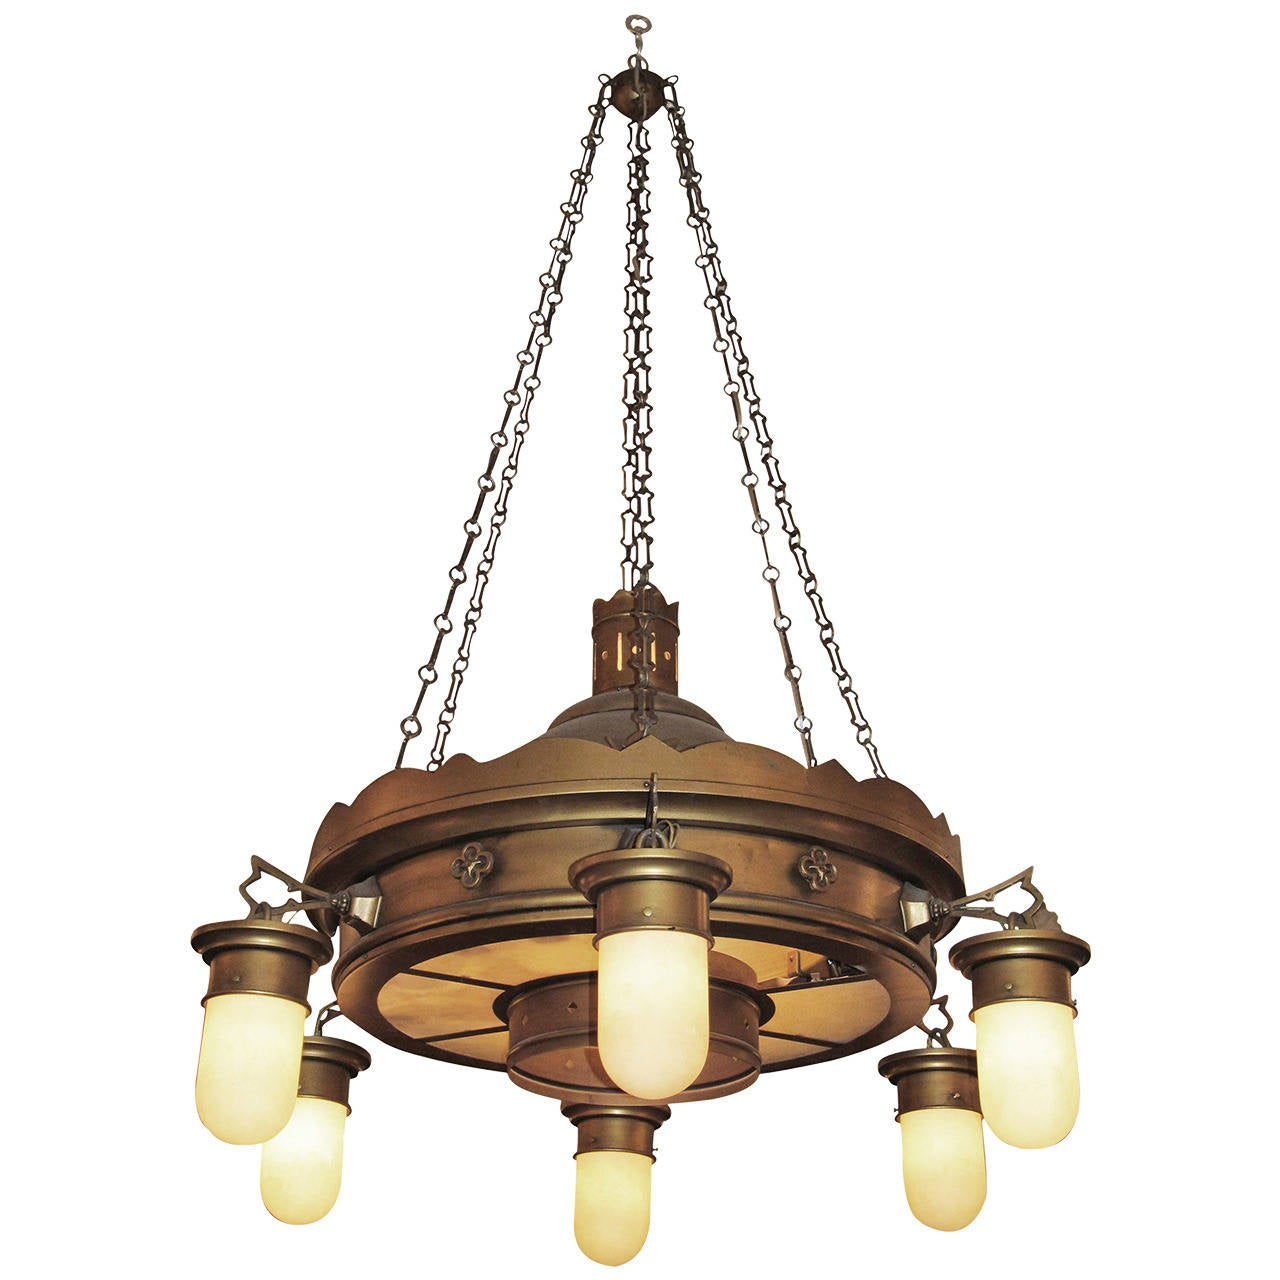 1940s brooklyn church brass and steel downlight chandelier with original shades at 1stdibs - Can light chandelier ...